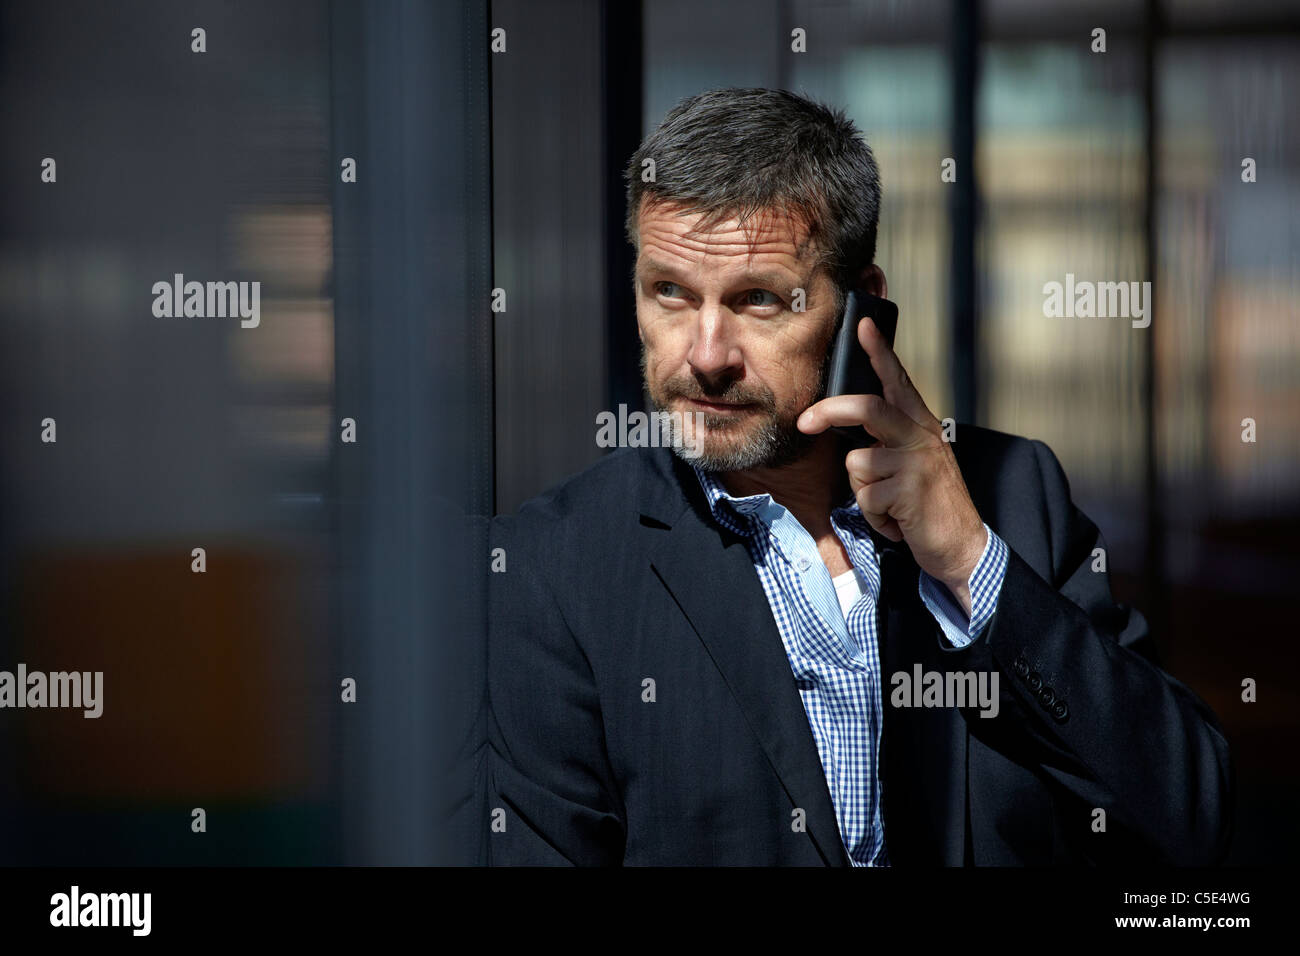 Middle-aged businessman using mobile phone against blurred background - Stock Image